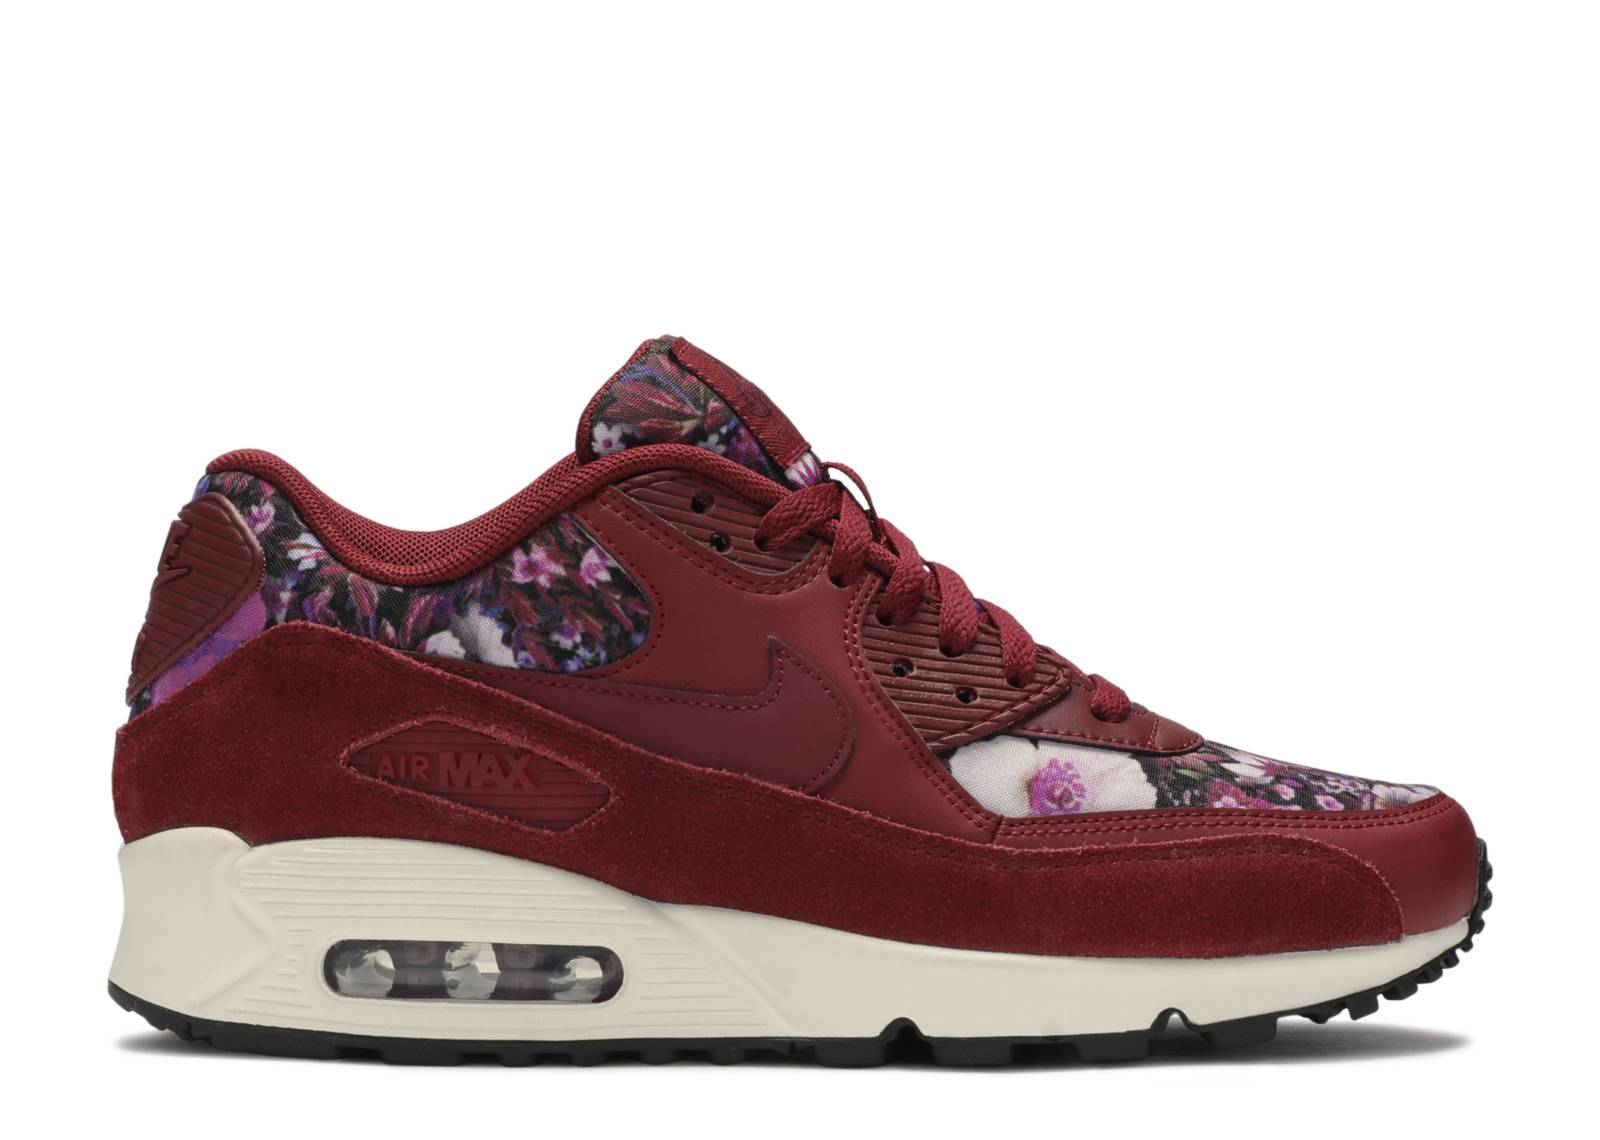 save off 6893e 7abf0 Wmns Air Max 90 Se - Nike - 881105 600 - team red/team red ...